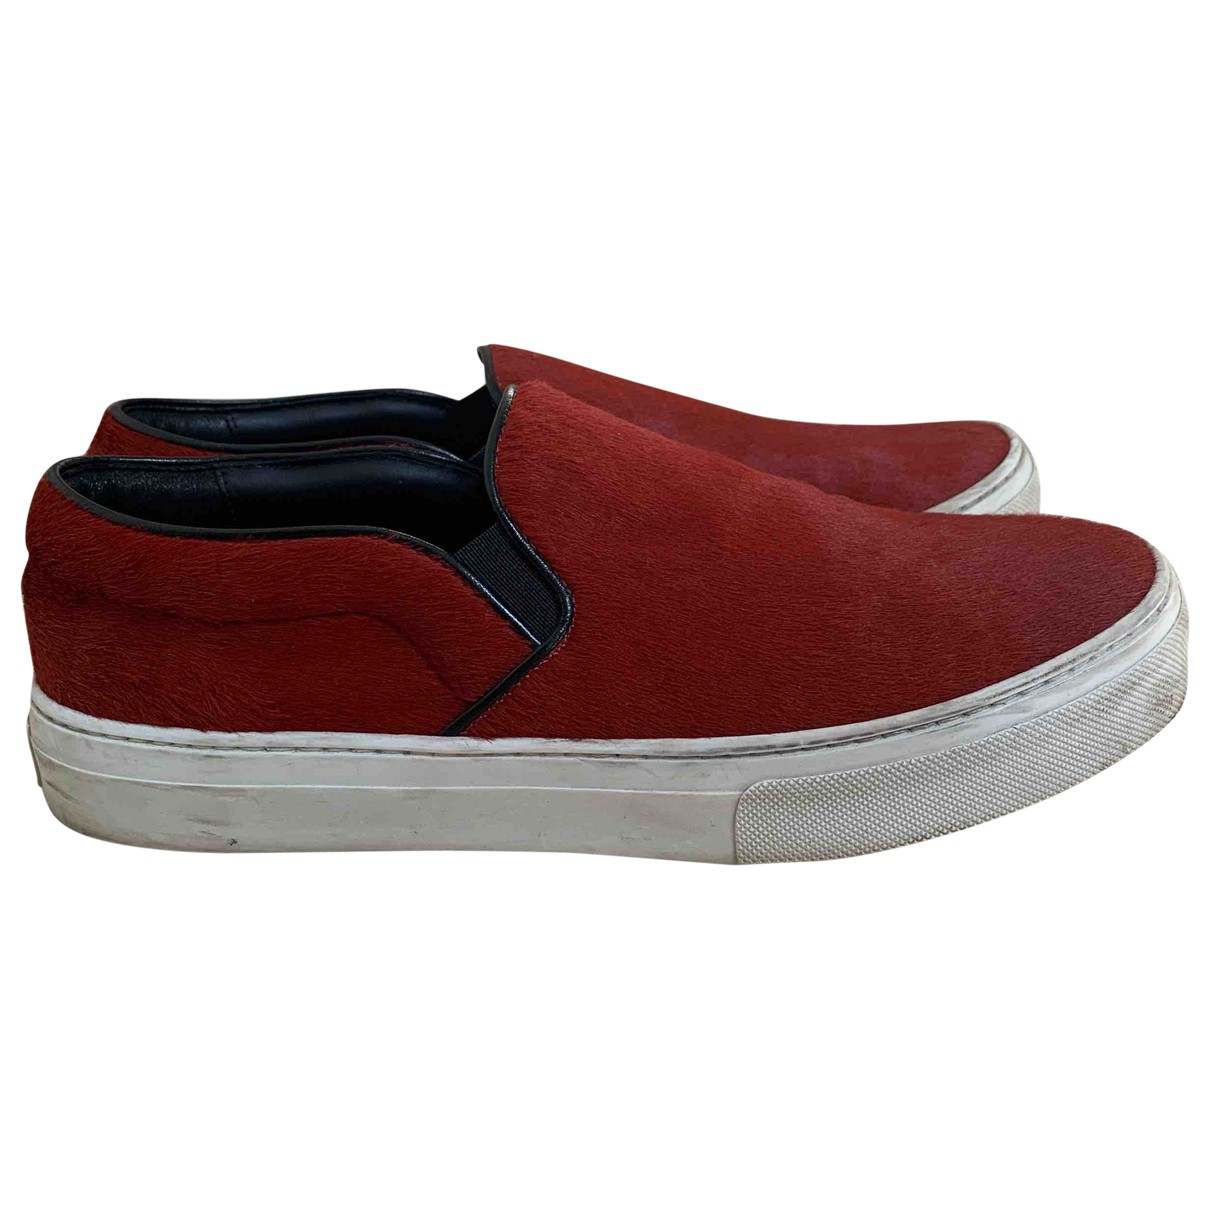 Celine \N Red Pony-style calfskin Trainers for Women 38 EU